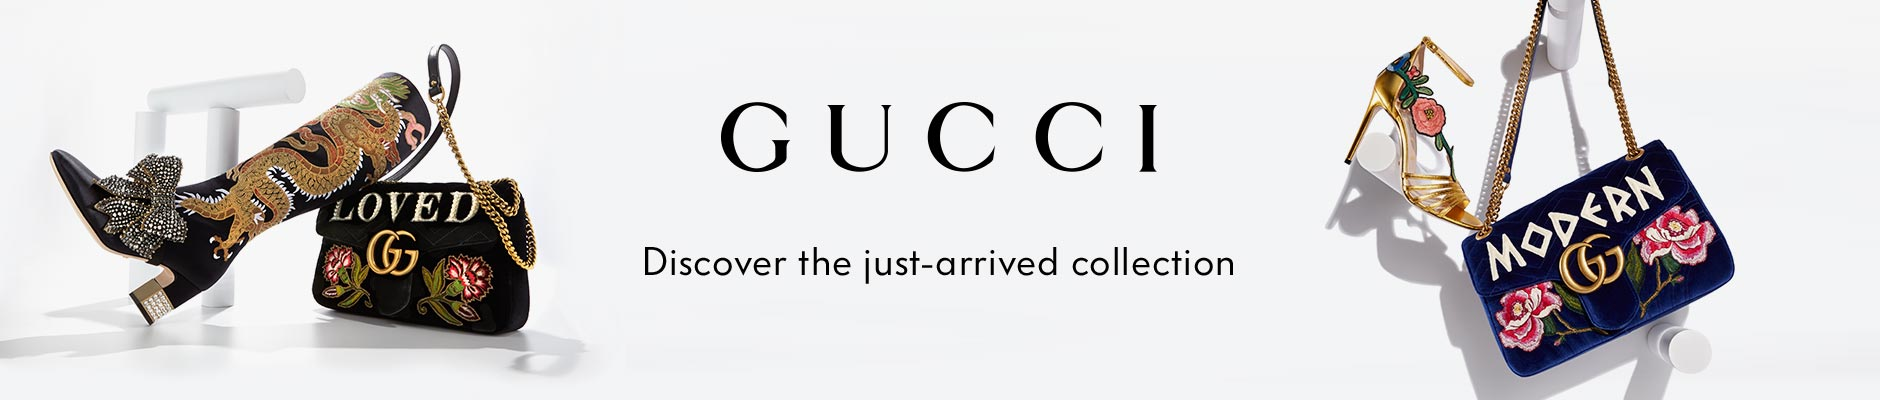 Gucci - Discover the just-arrived collection